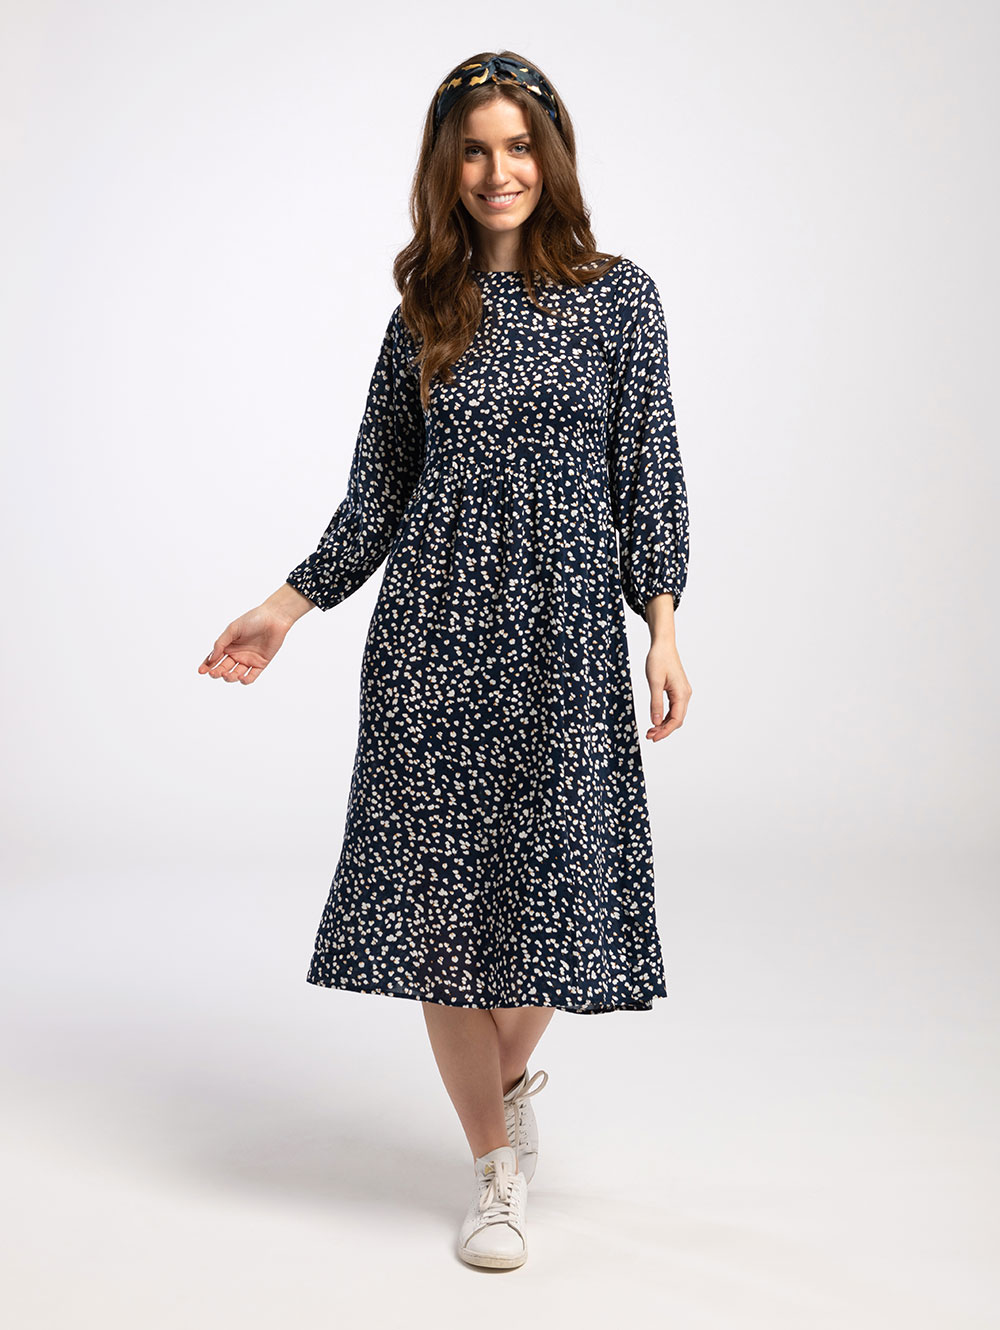 Midi Dress in Navy White Splodge